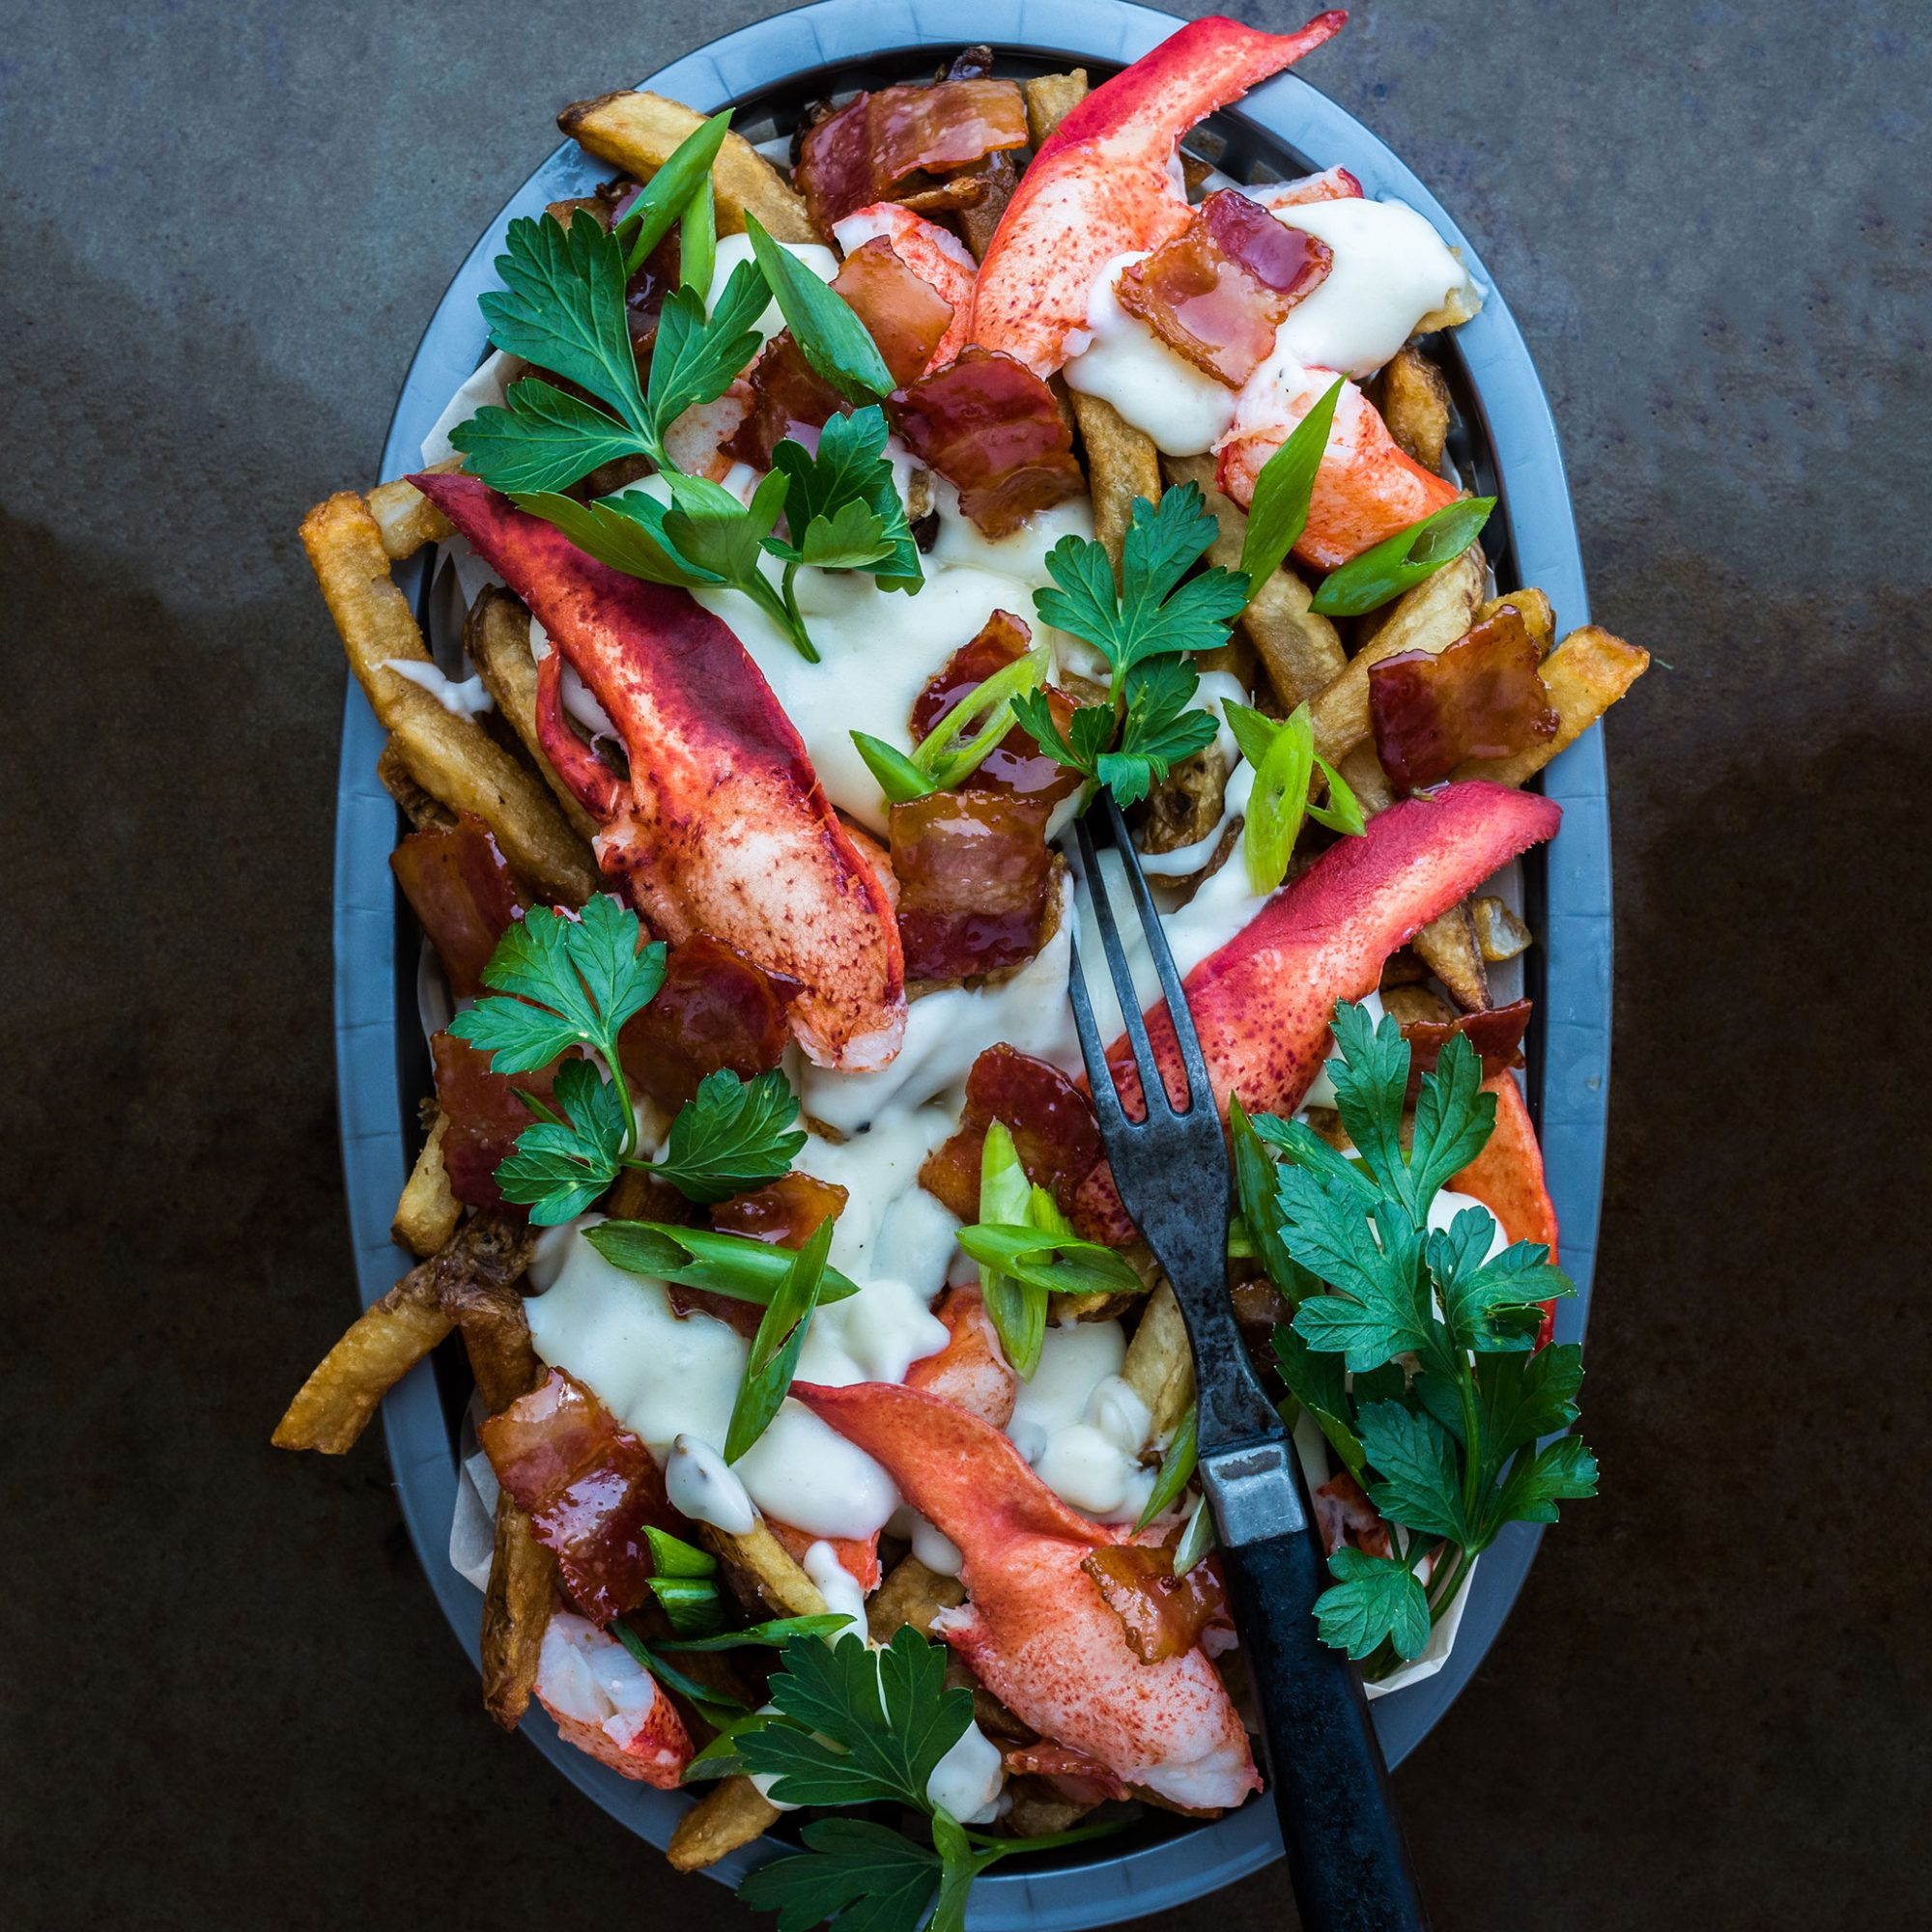 Make These Super Cheesy Bacon and Lobster French Fries Because There Is No Good Reason Not To